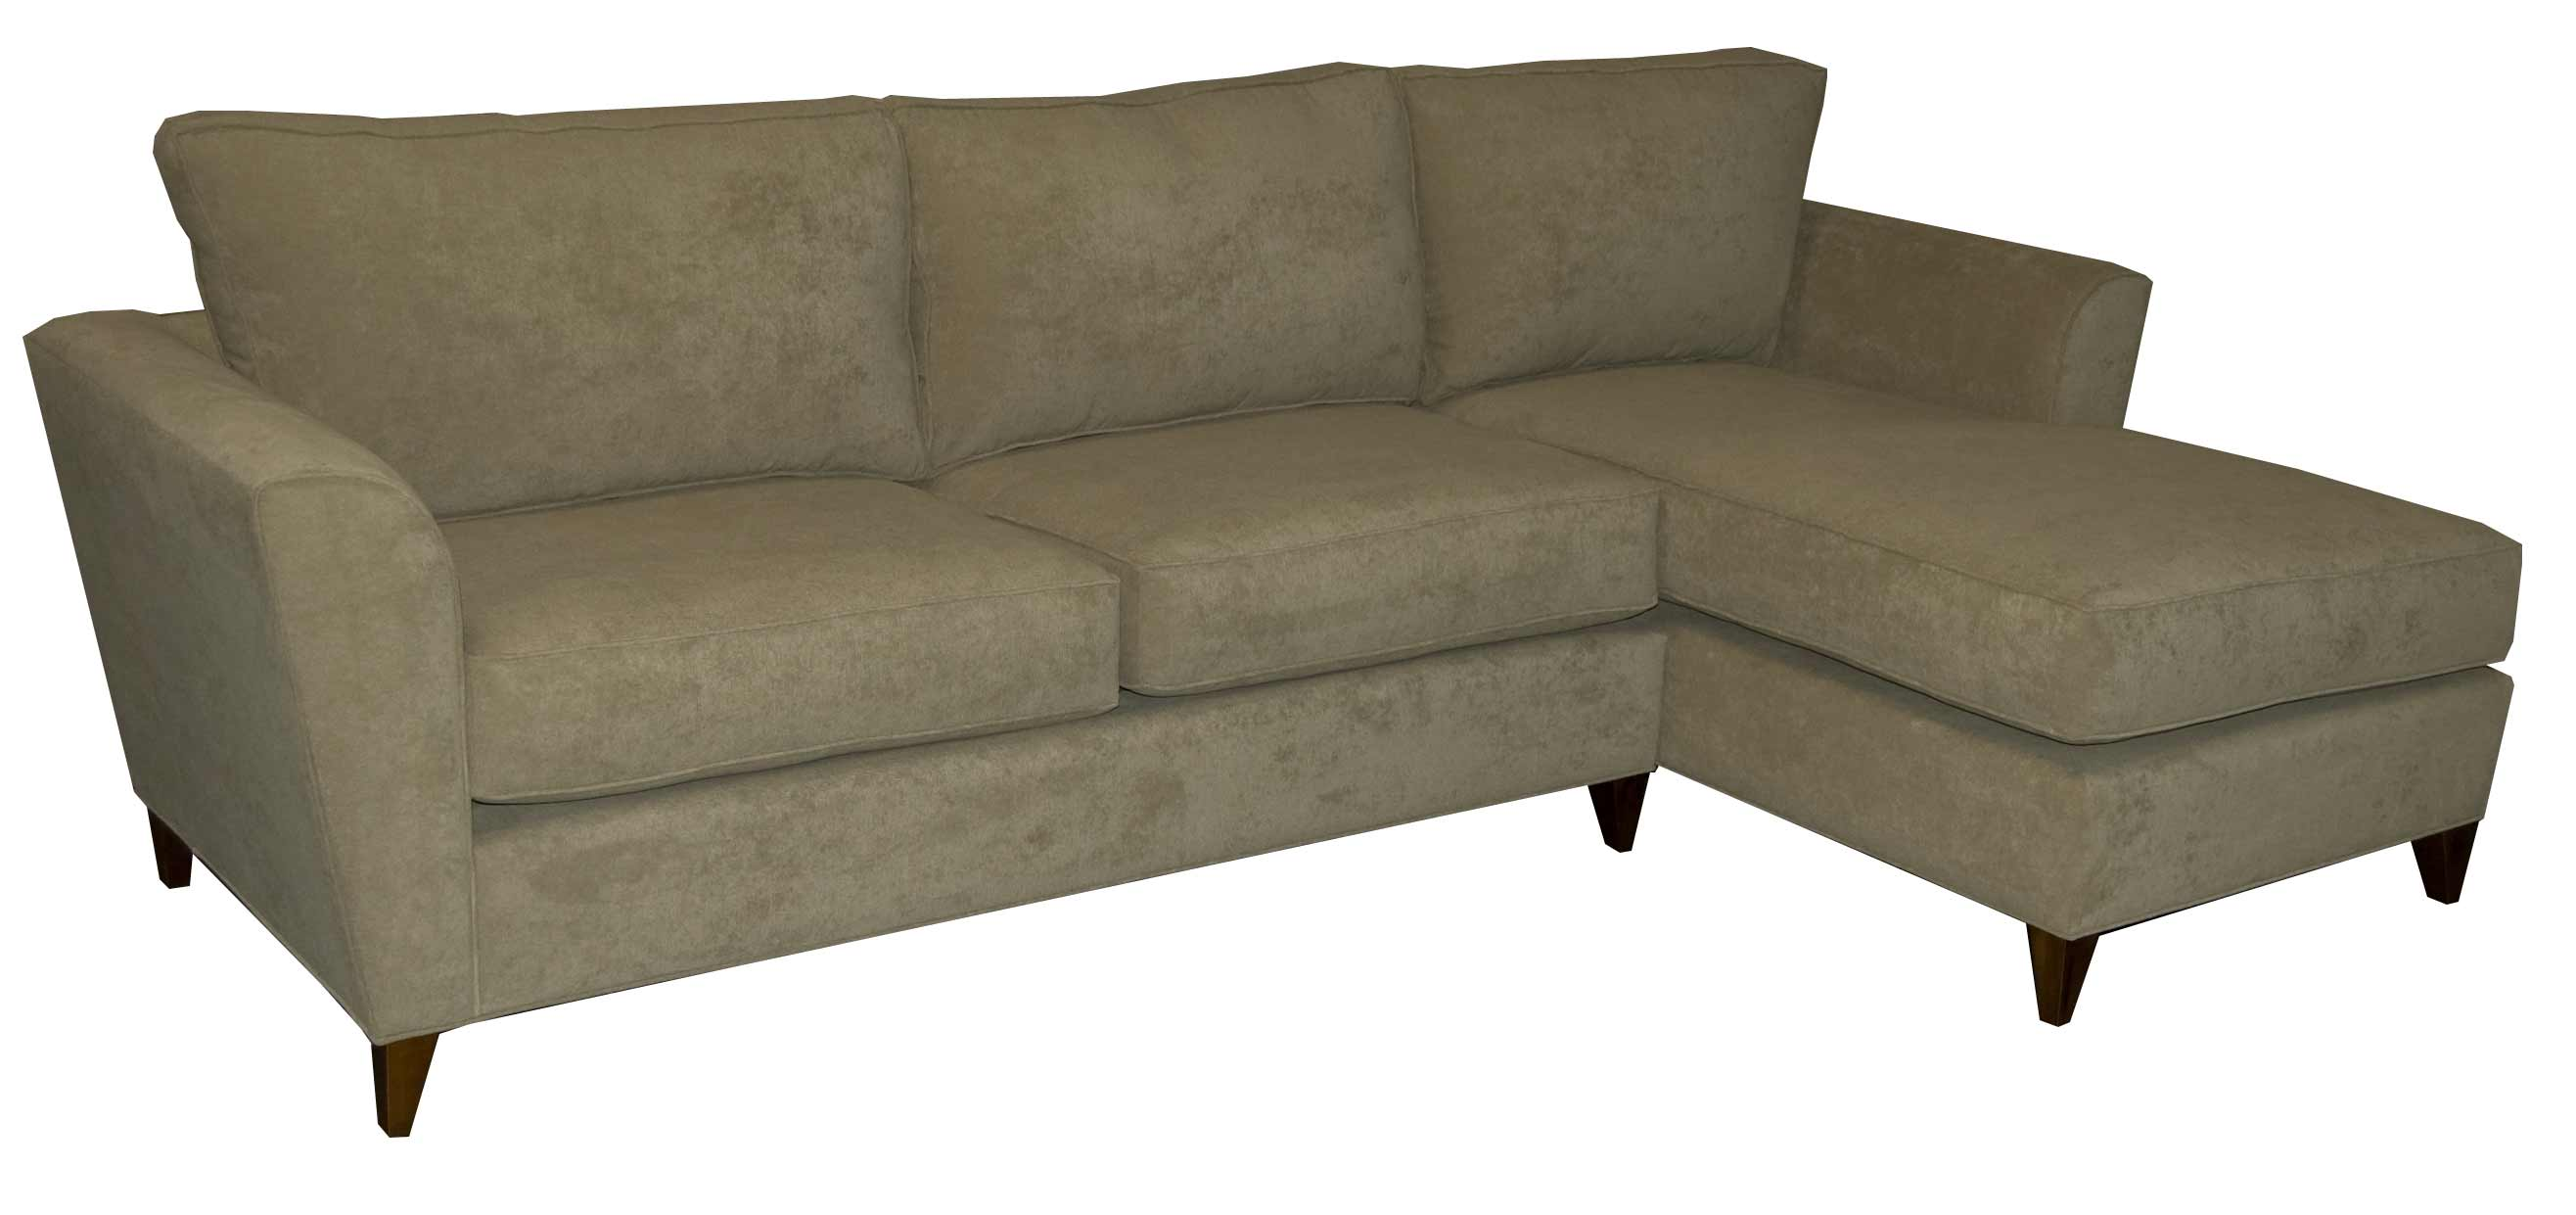 charming cheap sectional sofas in tan with black small legs for living room furniture ideas